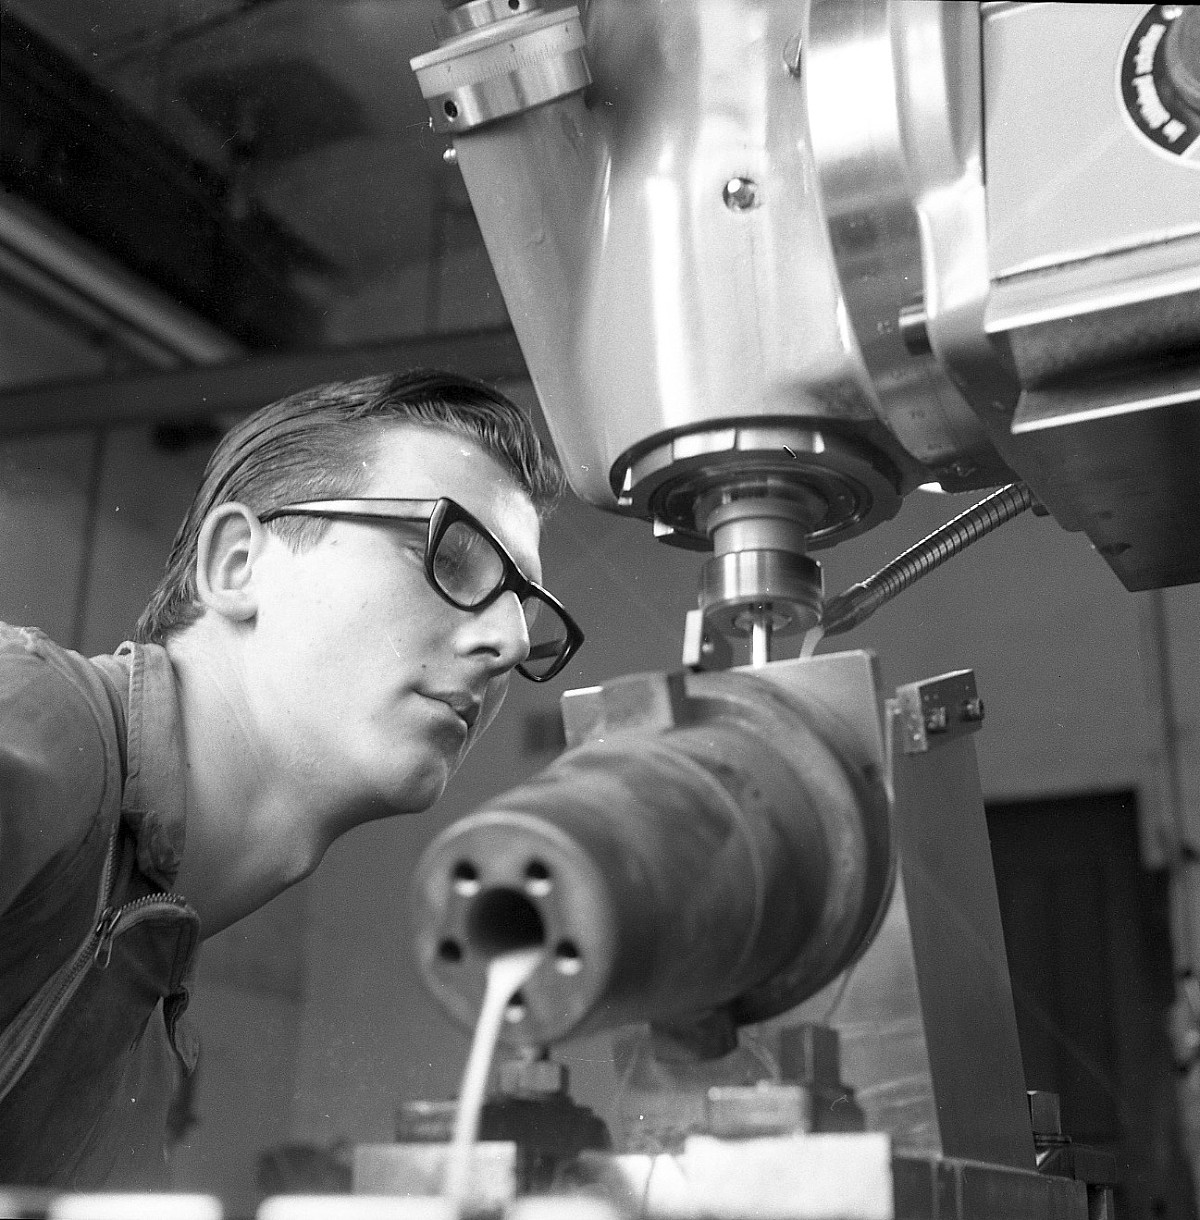 GFA 17/650072.35: Reportage: vocational training of technical draftsmen